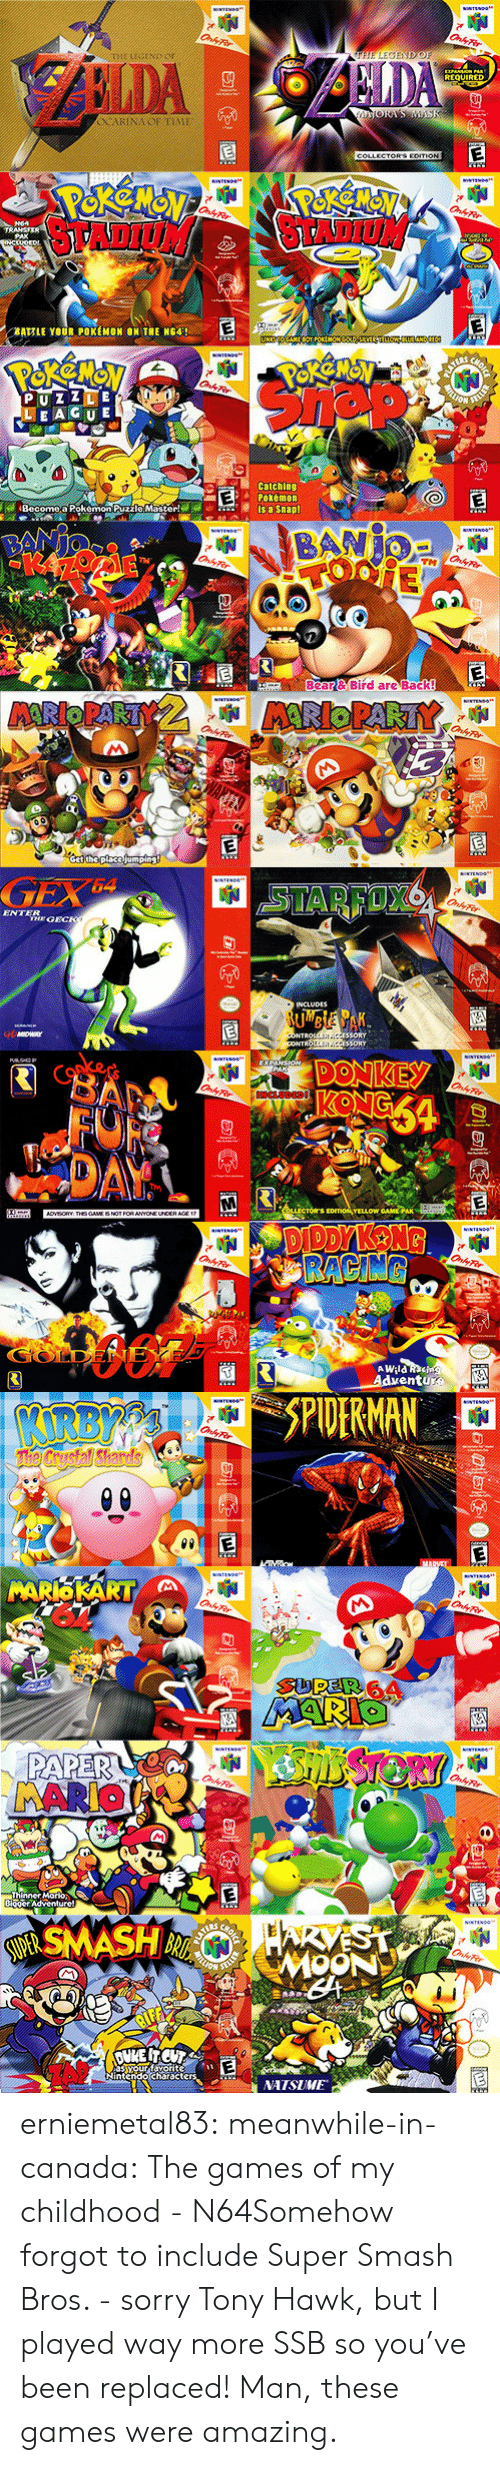 "n64: REQUIRED  BA""LE YOUR POKEMON ON THE NG41  LEAGU E  Become,a Pokemon Puzzlo Master!  Bear& Bird are Back!   ENTER  DONKEY  A WHla  entu   SPIDERMAN  İNATSIME  Nintendo characte erniemetal83:  meanwhile-in-canada:  The games of my childhood - N64Somehow forgot to include Super Smash Bros. - sorry Tony Hawk, but I played way more SSB so you've been replaced!  Man, these games were amazing."